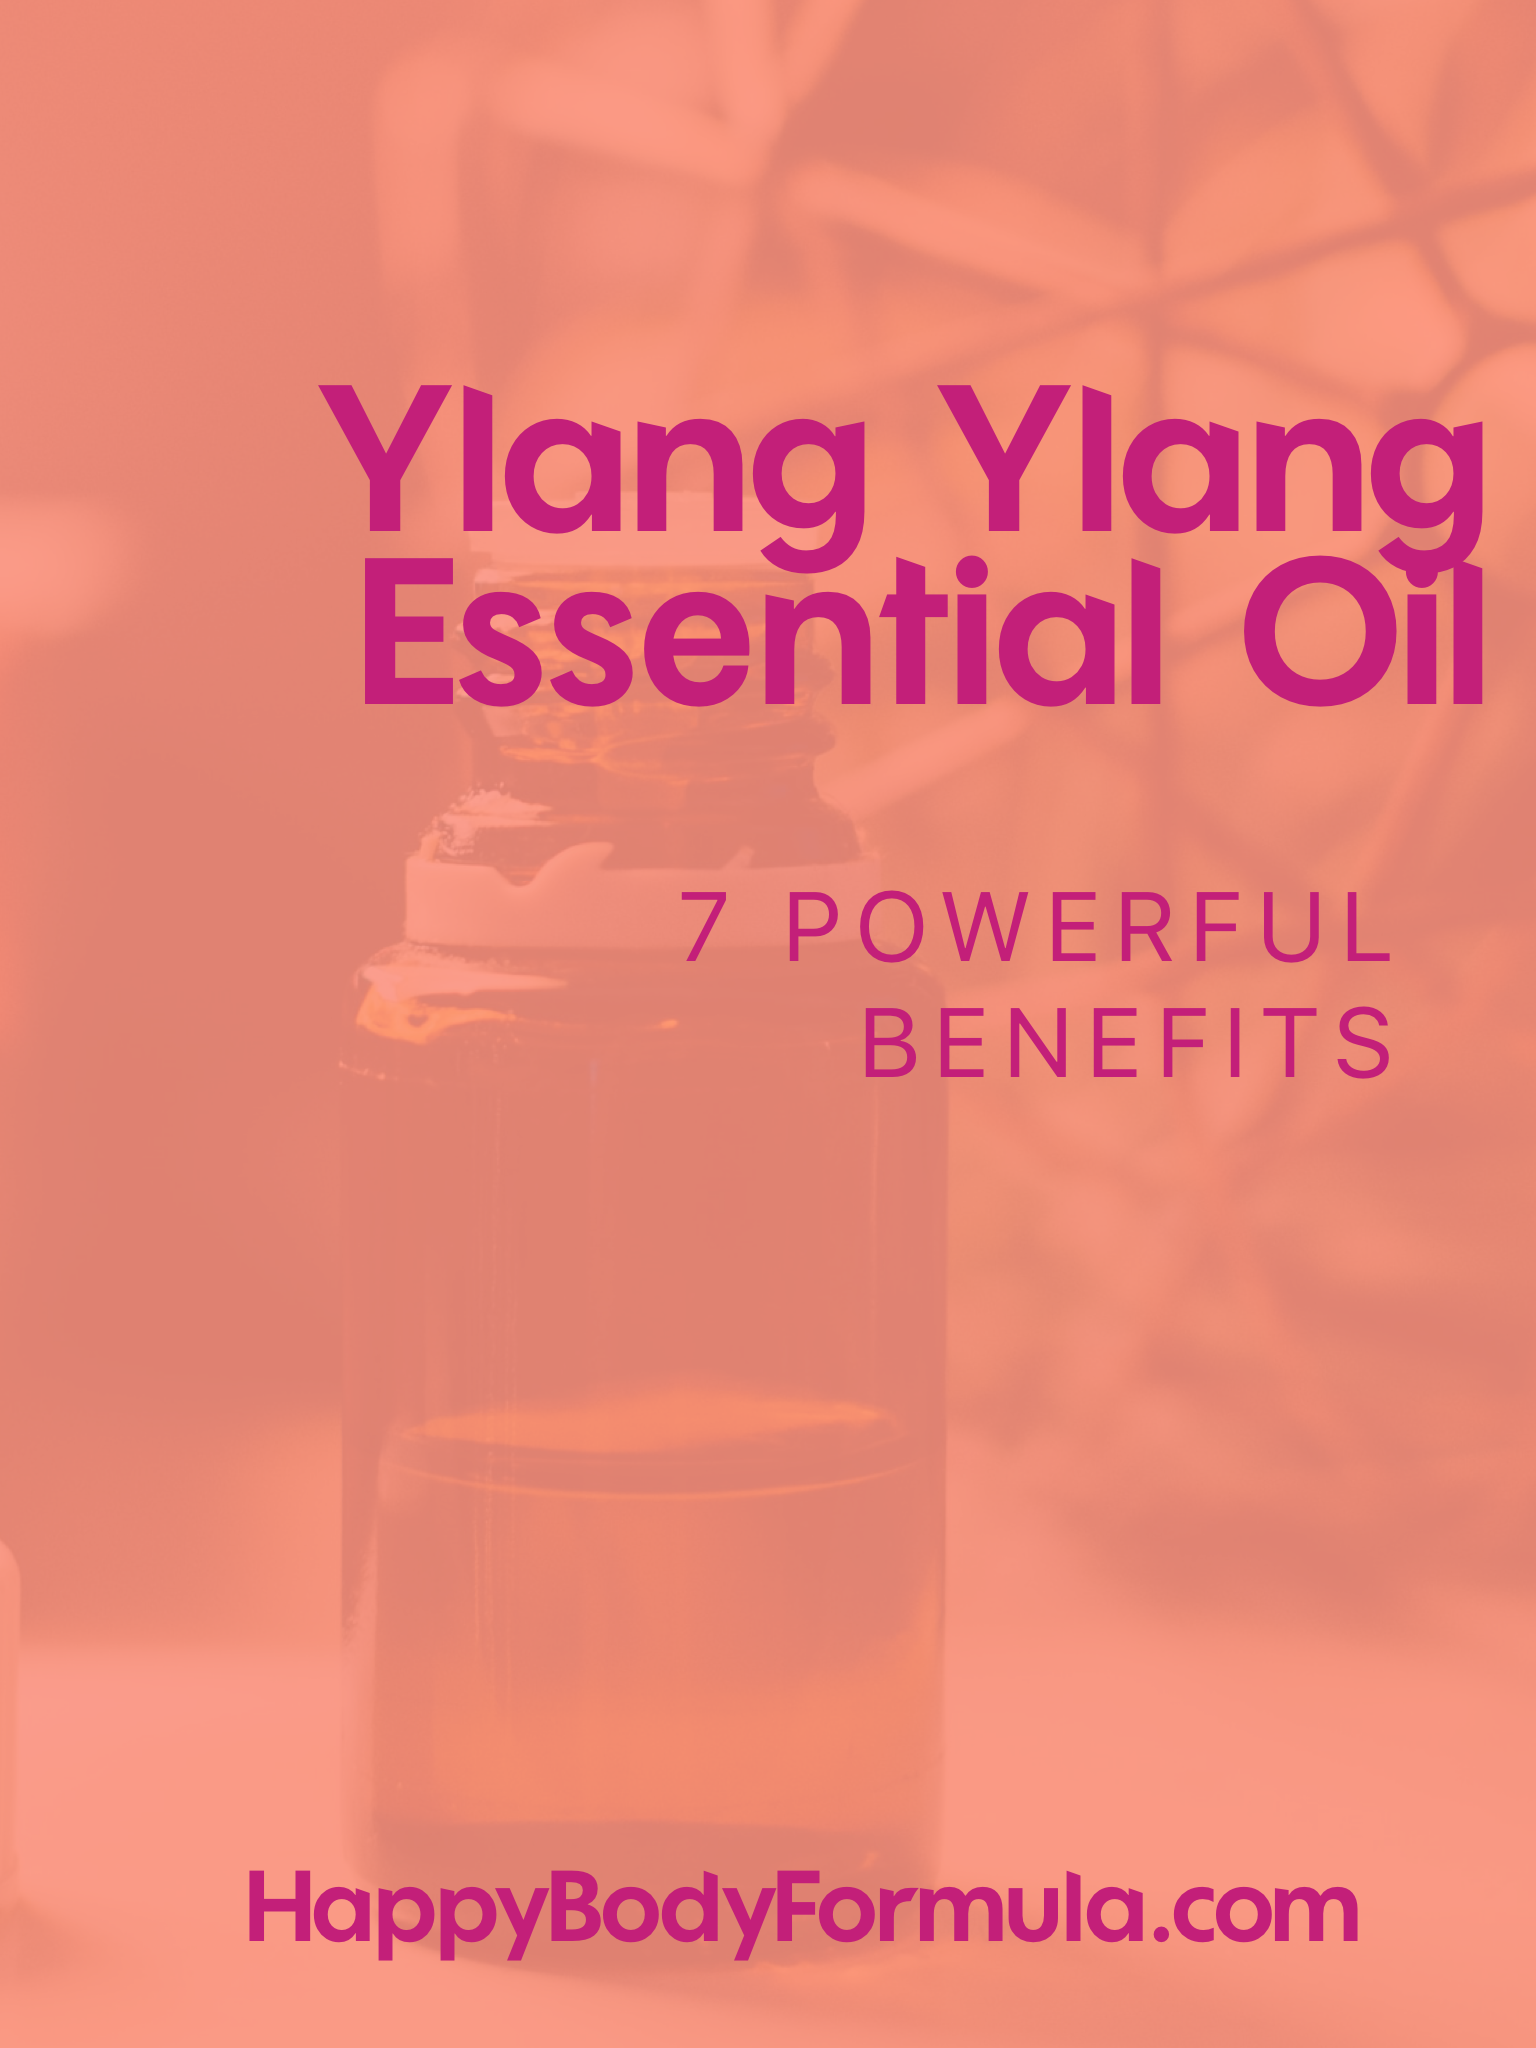 7 Powerful Benefits of Ylang Ylang Essential Oil | Happybodyformula.com